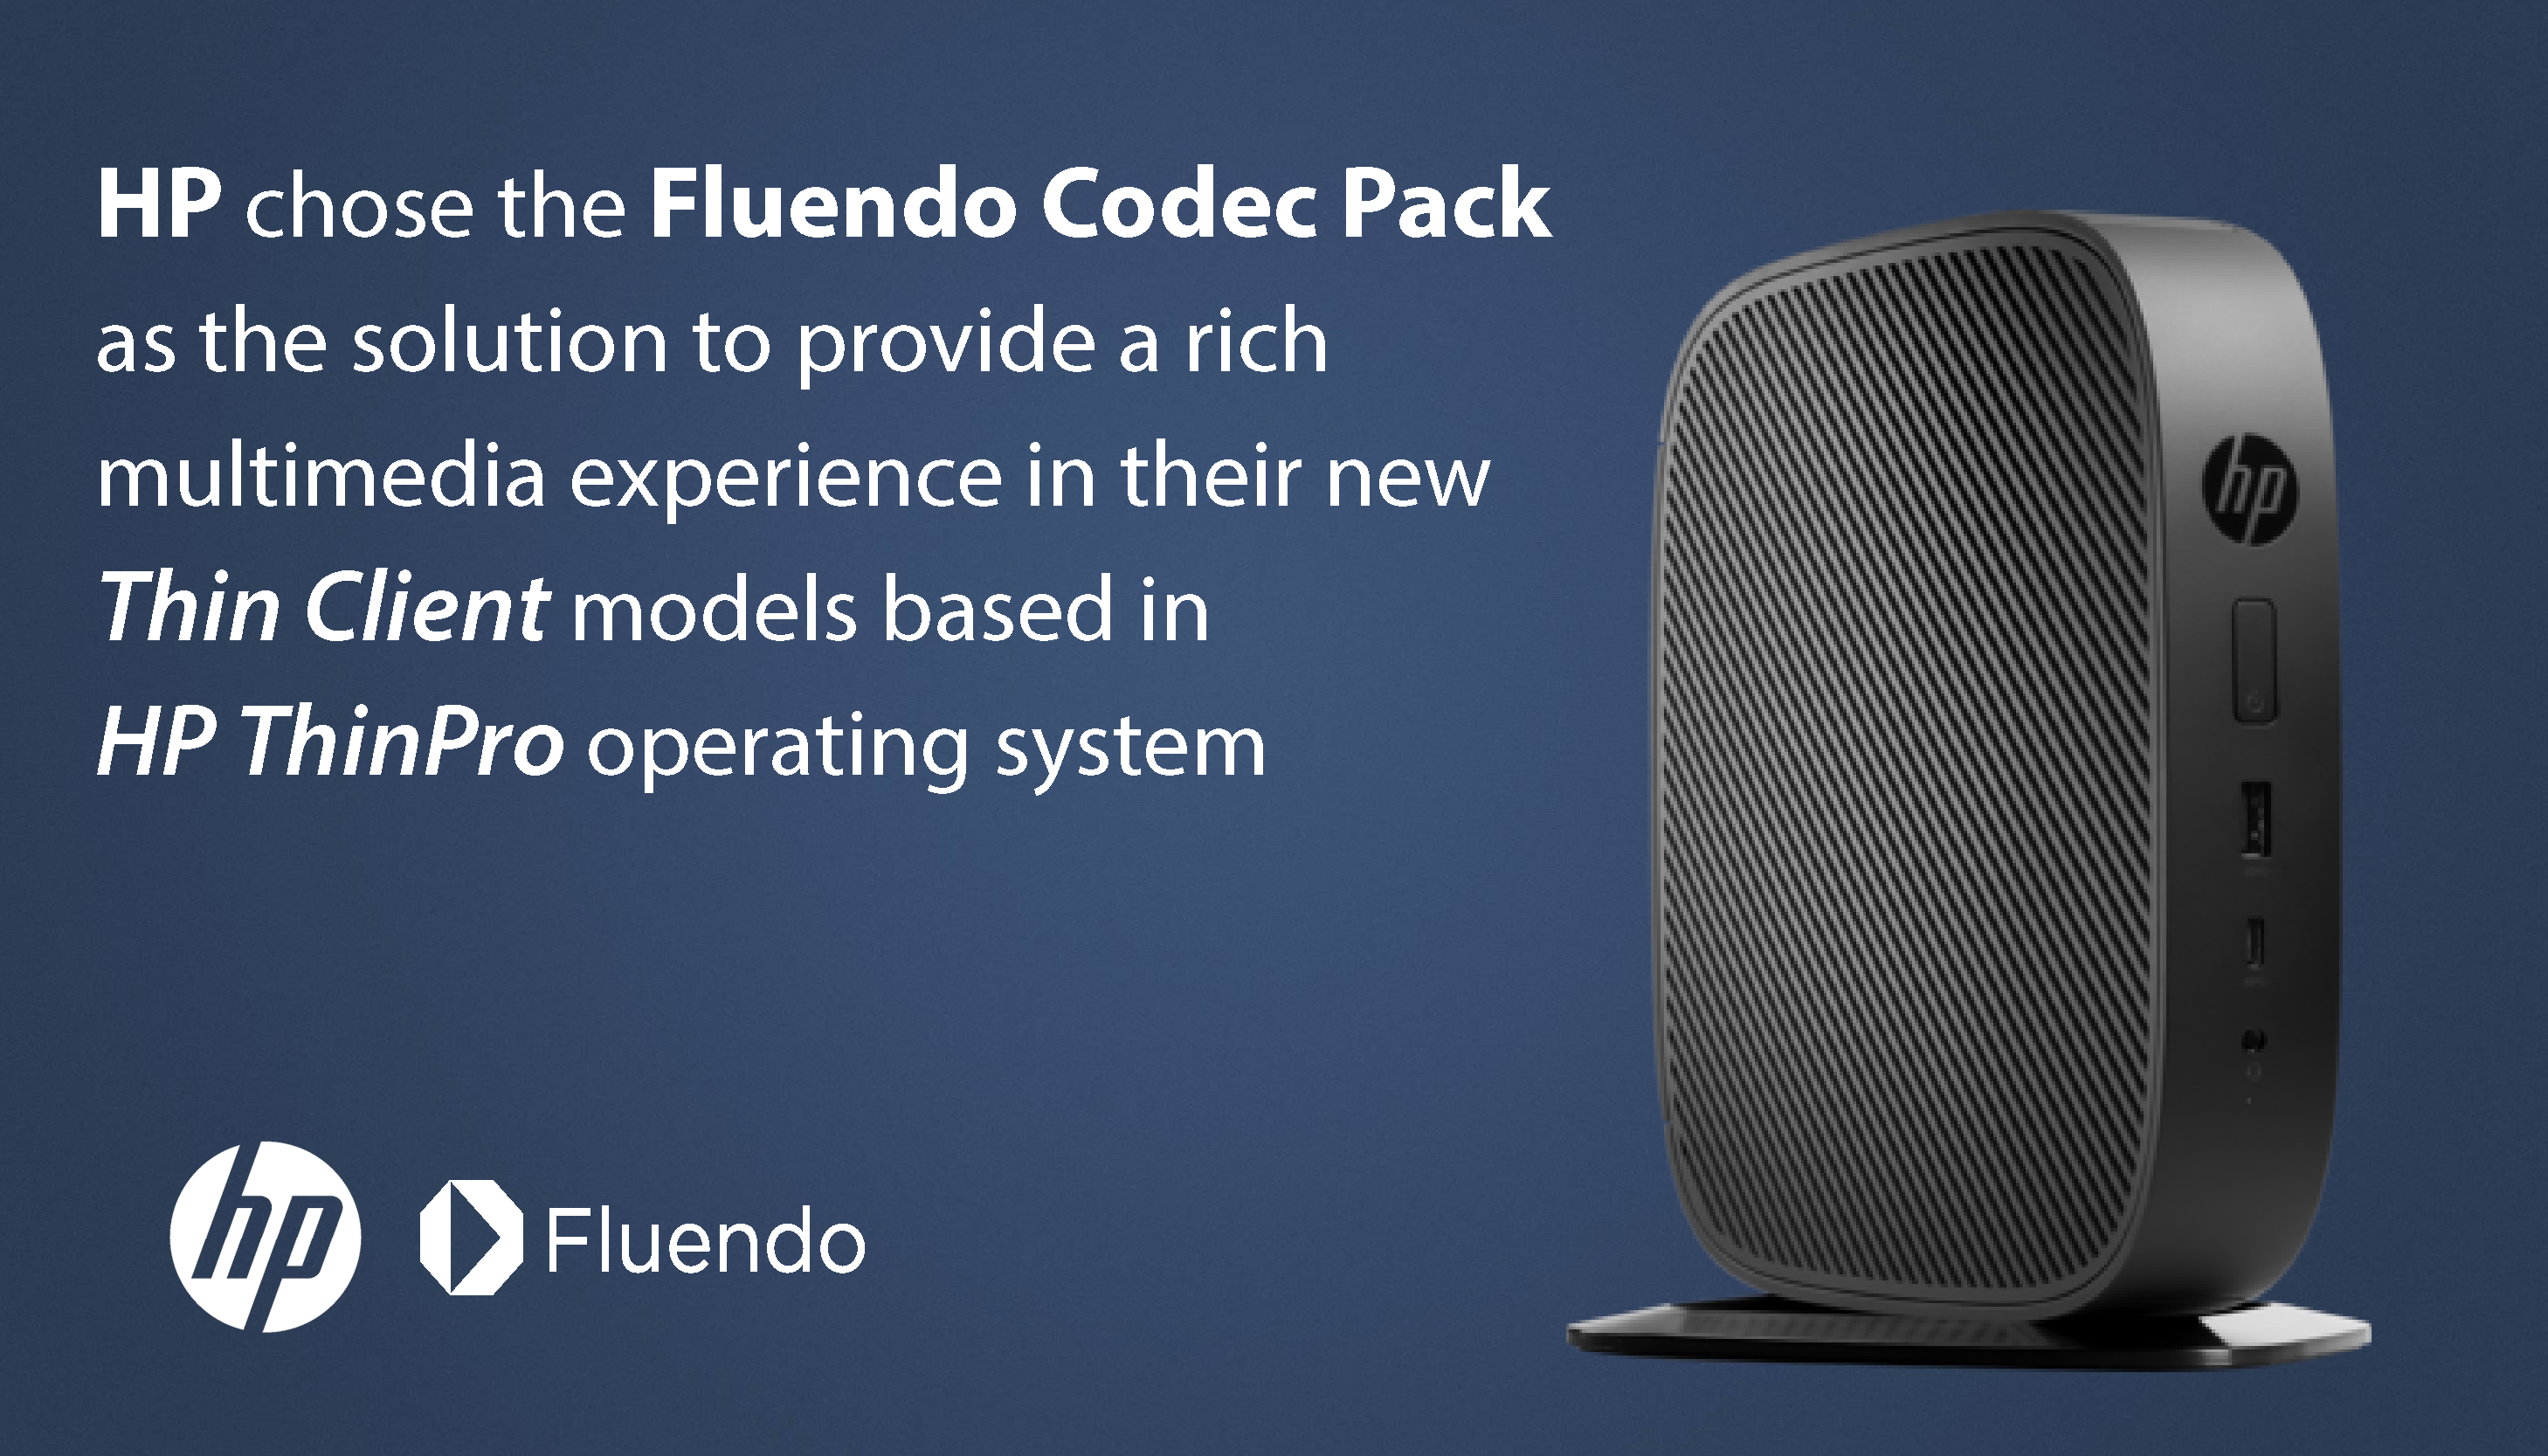 HP trusts in the Fluendo Codec Pack for their new line of Linux-based Thin Clients